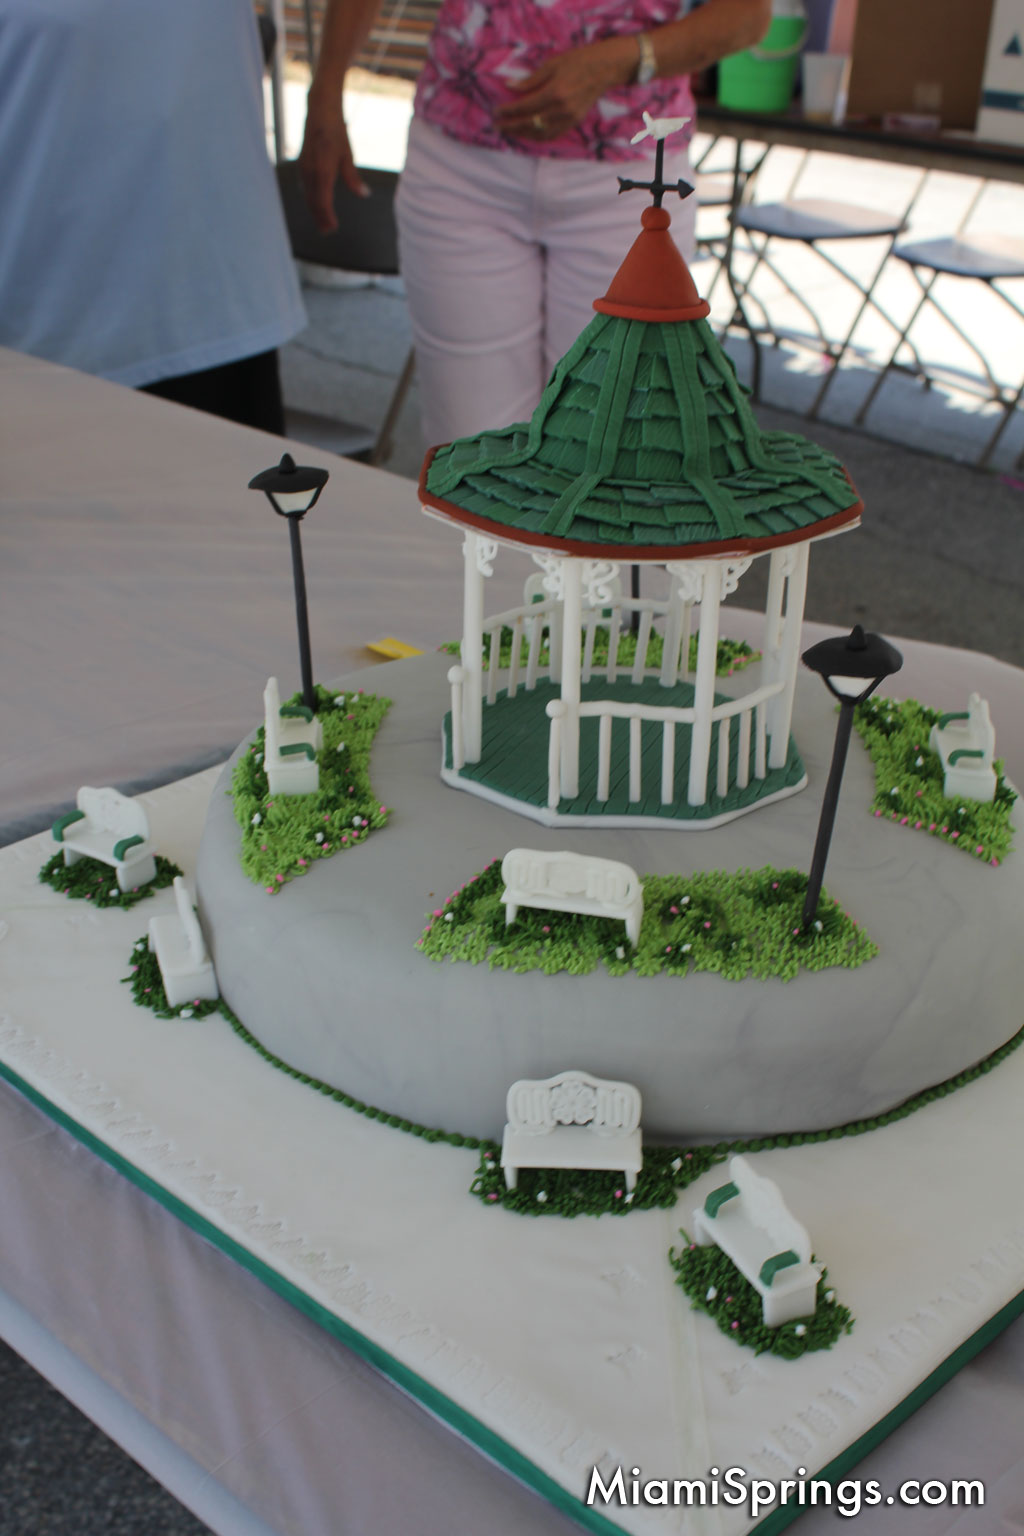 Custom Gazeebo Cake